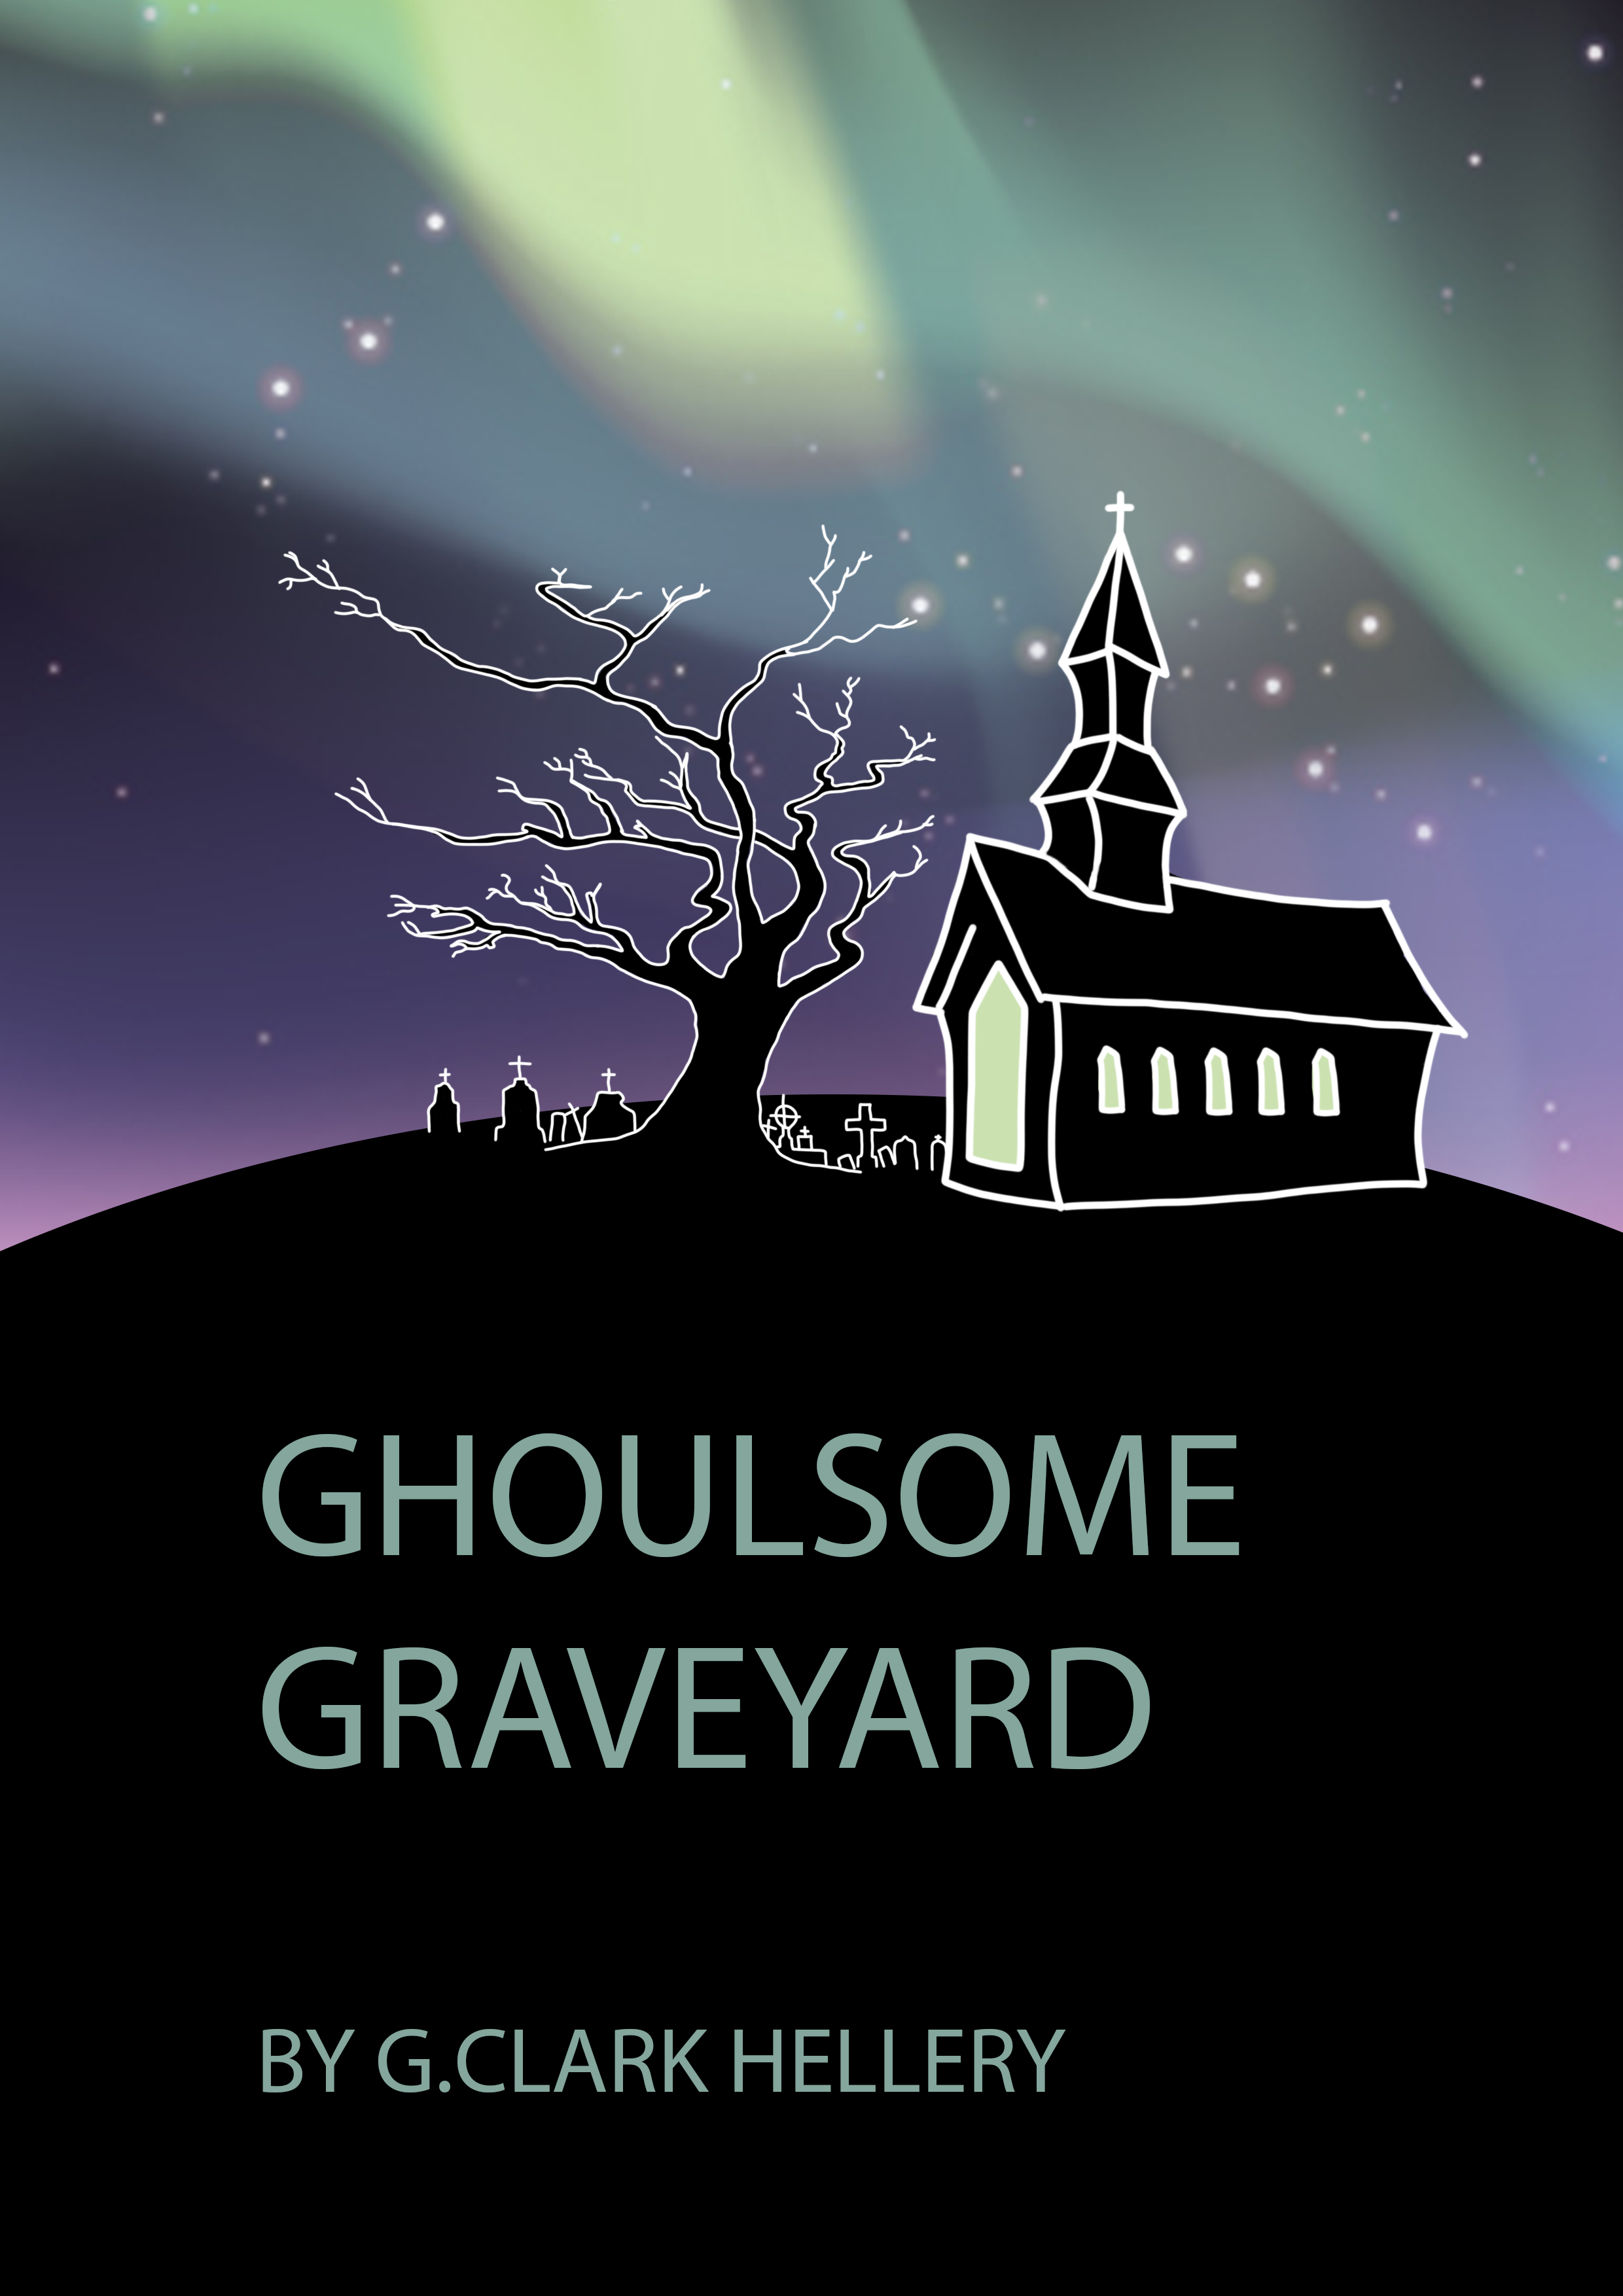 Ghoulsome Graveyard by G. Clark Hellery